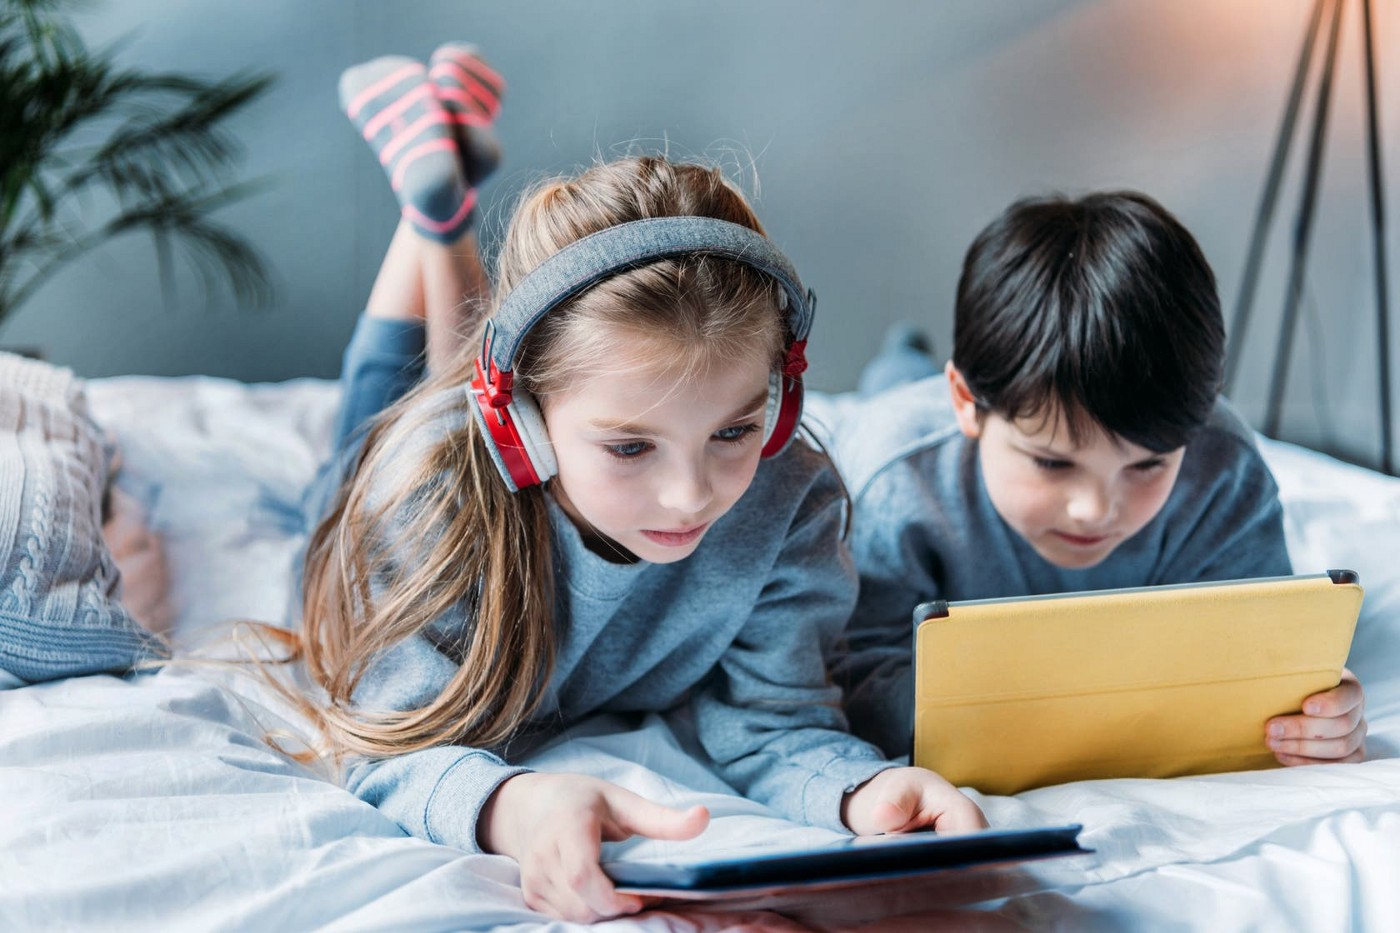 How can I manage my child's screen time?